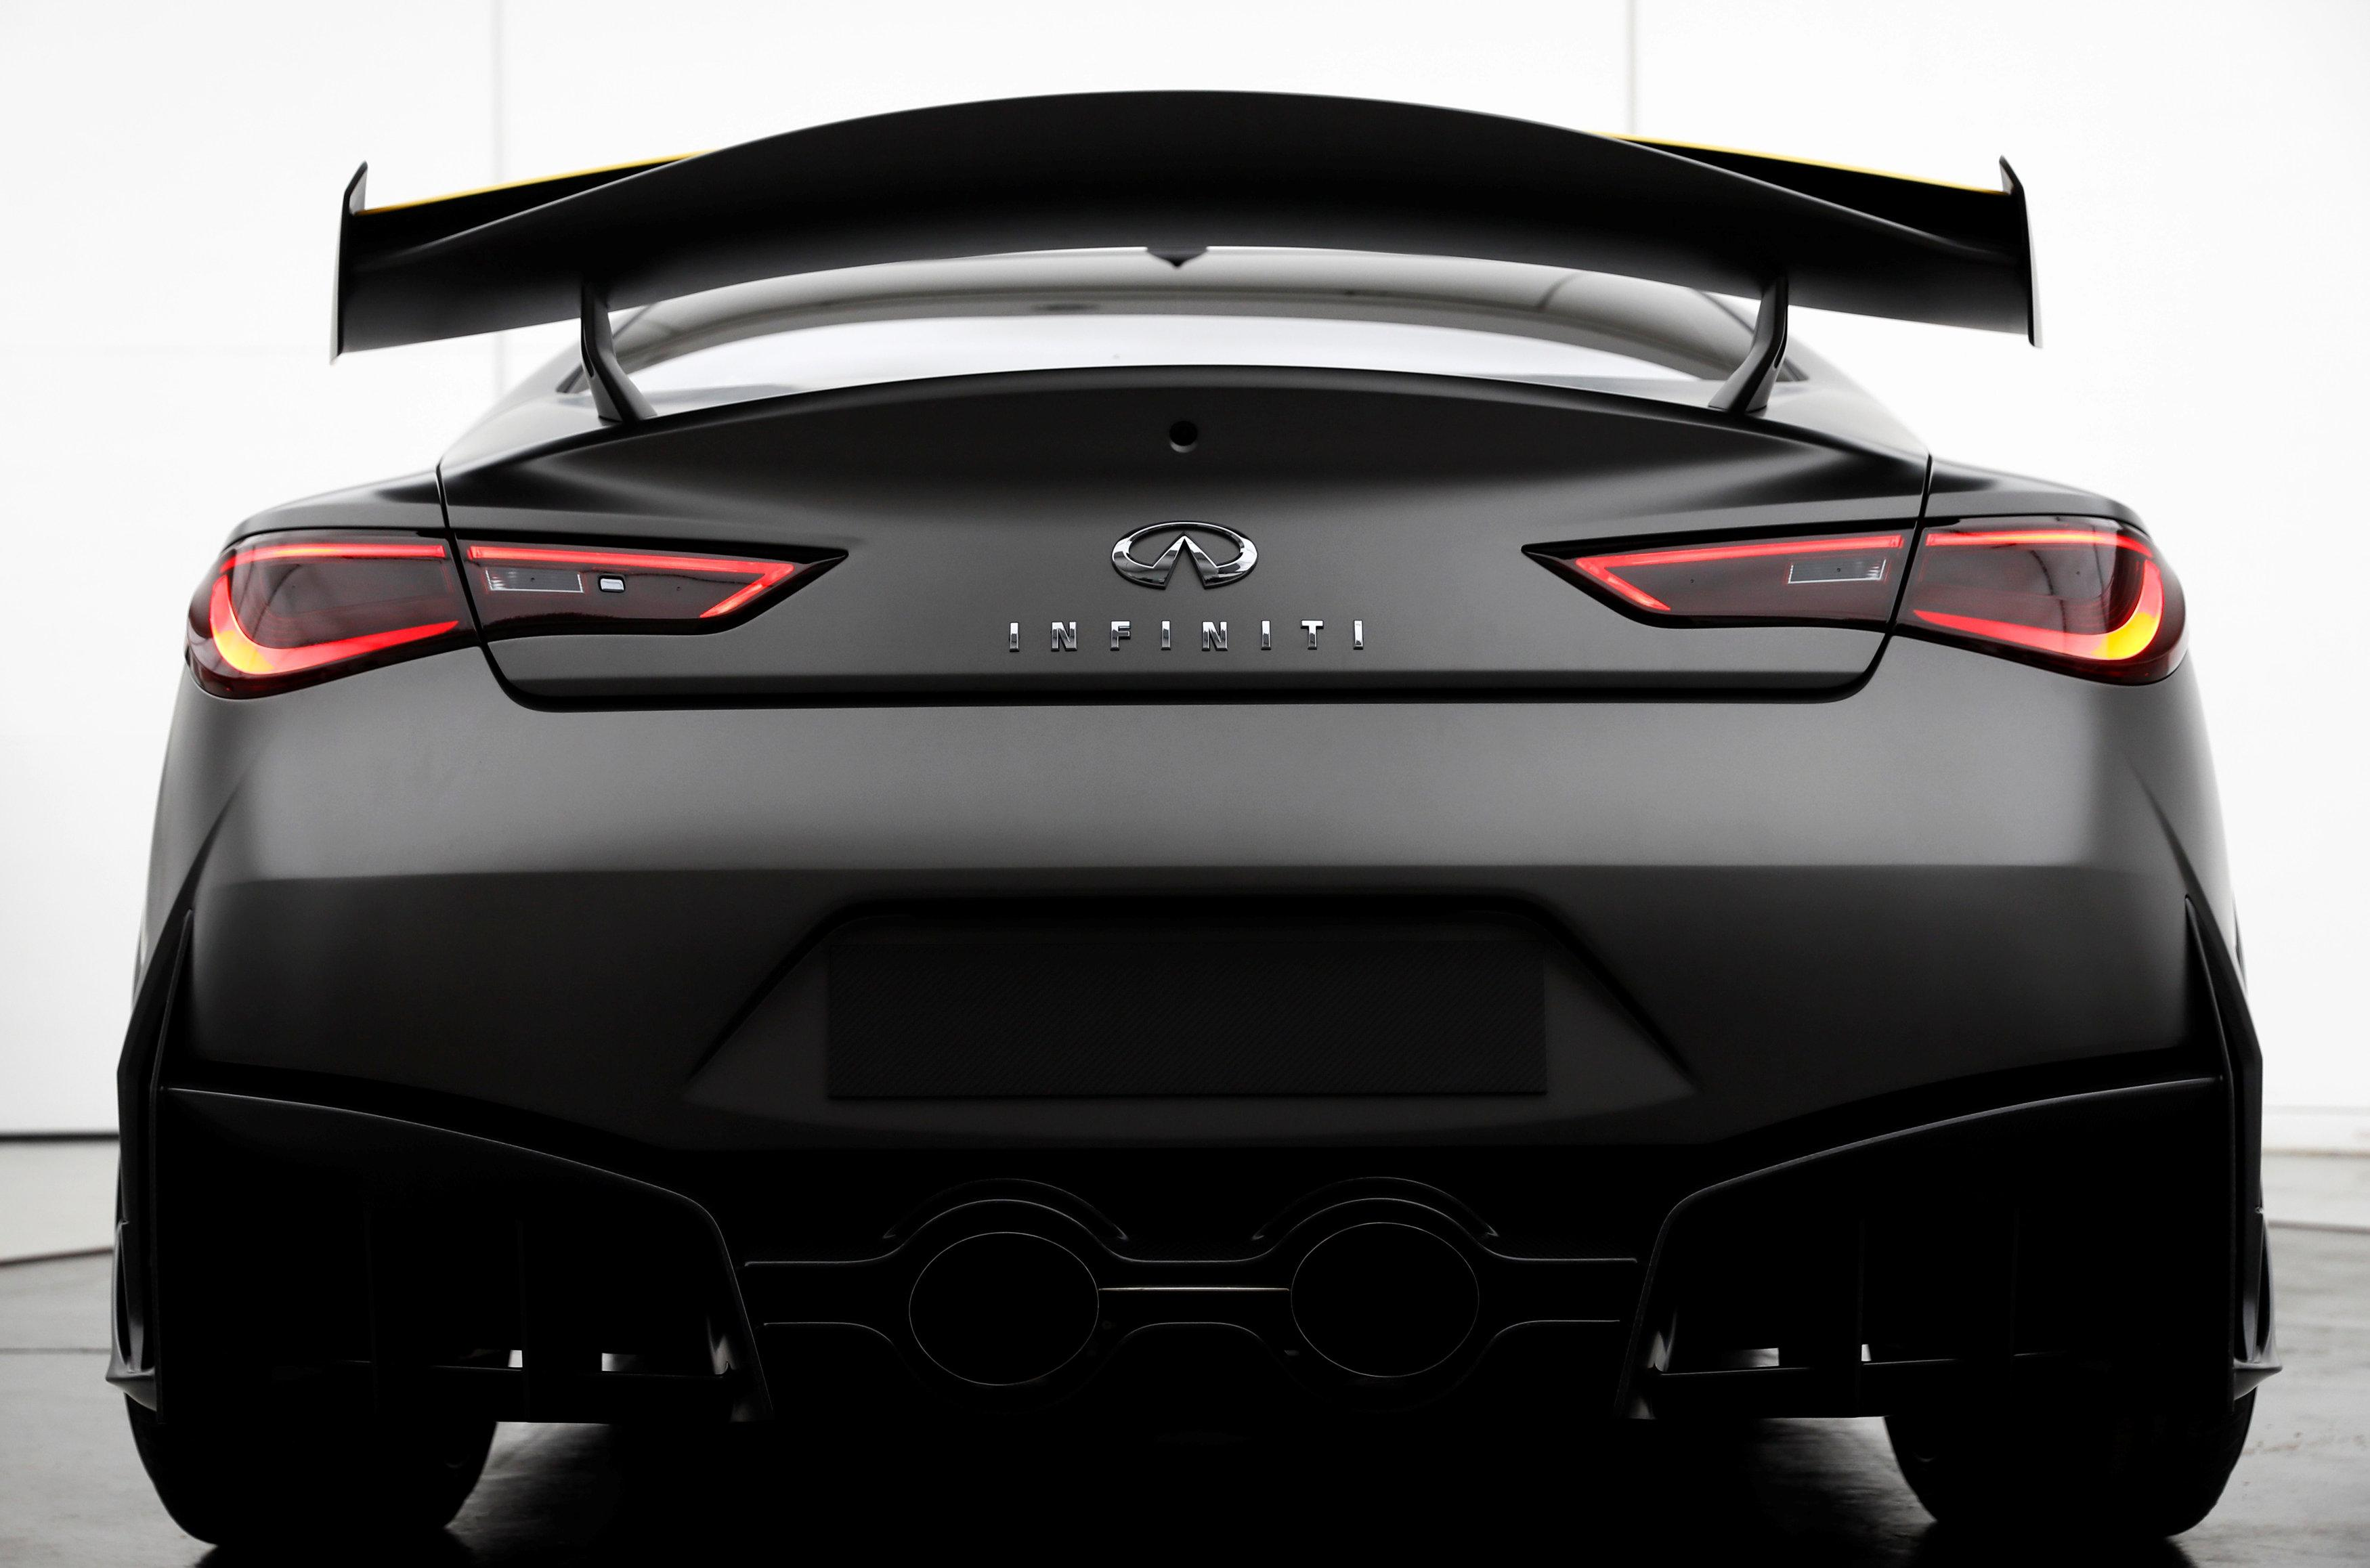 infinity now infiniti pin yowza more concept that s cars and surfacing explore automobile flame